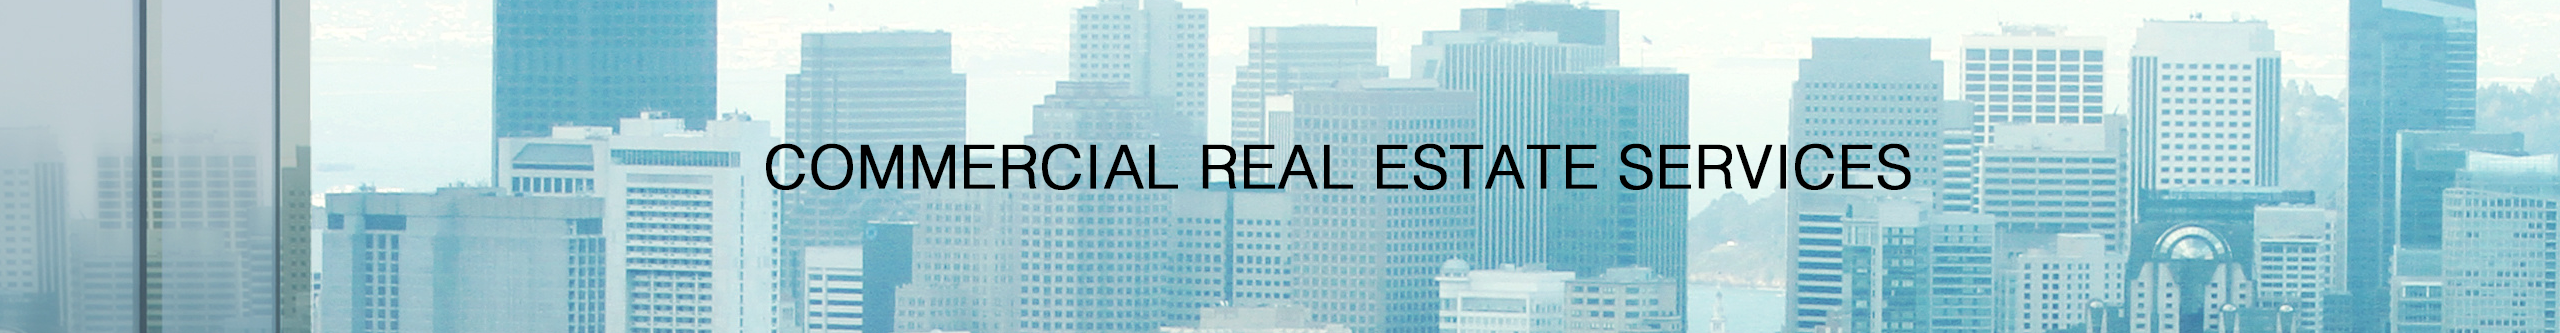 Commercialrealestateservices-center